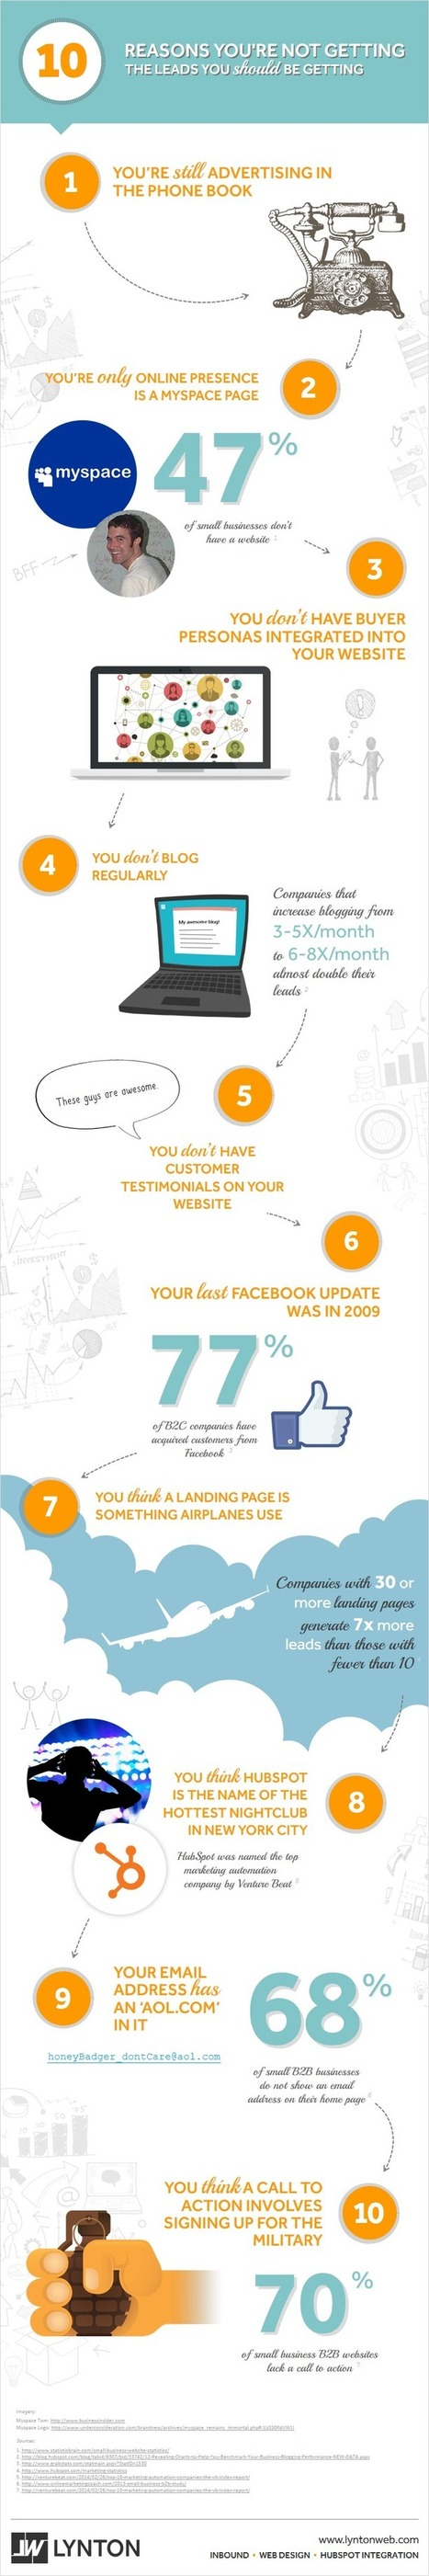 10 Reasons You're Not Getting The Leads You Should Be Getting [Infographic]   YazDum Inbound and Content Marketing   Scoop.it